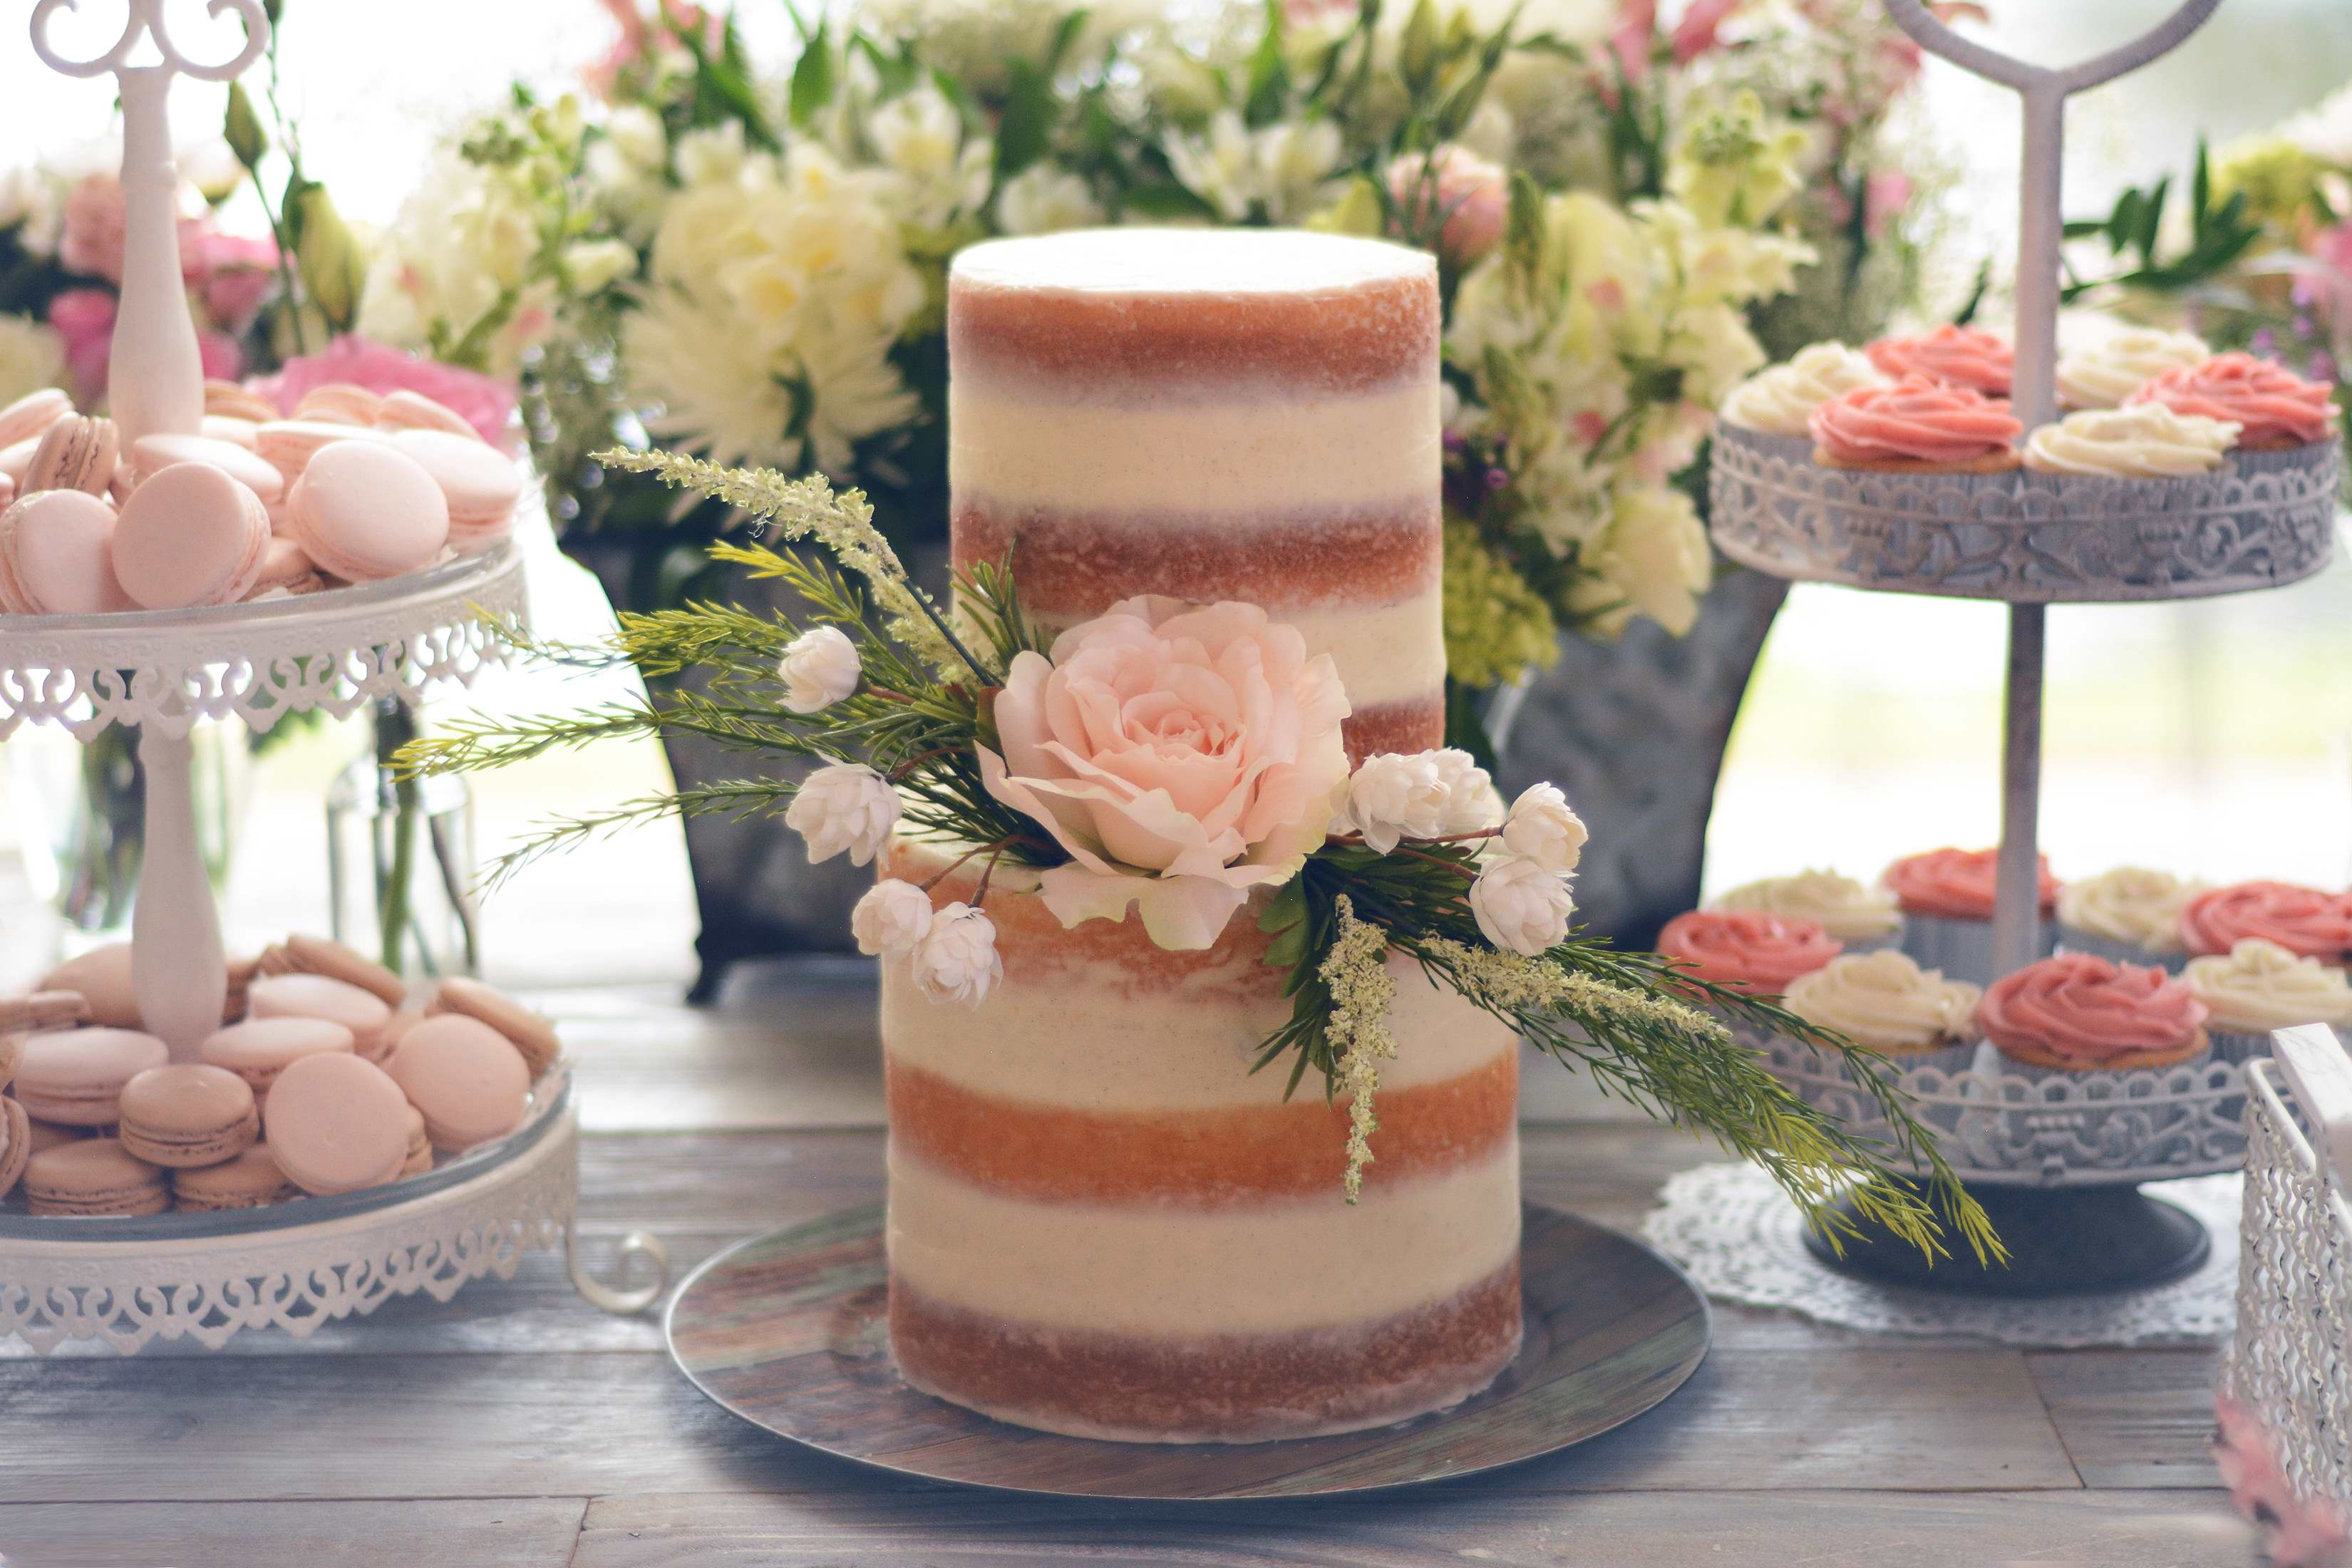 – 7 a Melissa Mae Etue Sweets french macaroons fruit food photographer katherine eastman miami Photography fine cooking baking pink rose Cake baby shower cupcakes_01